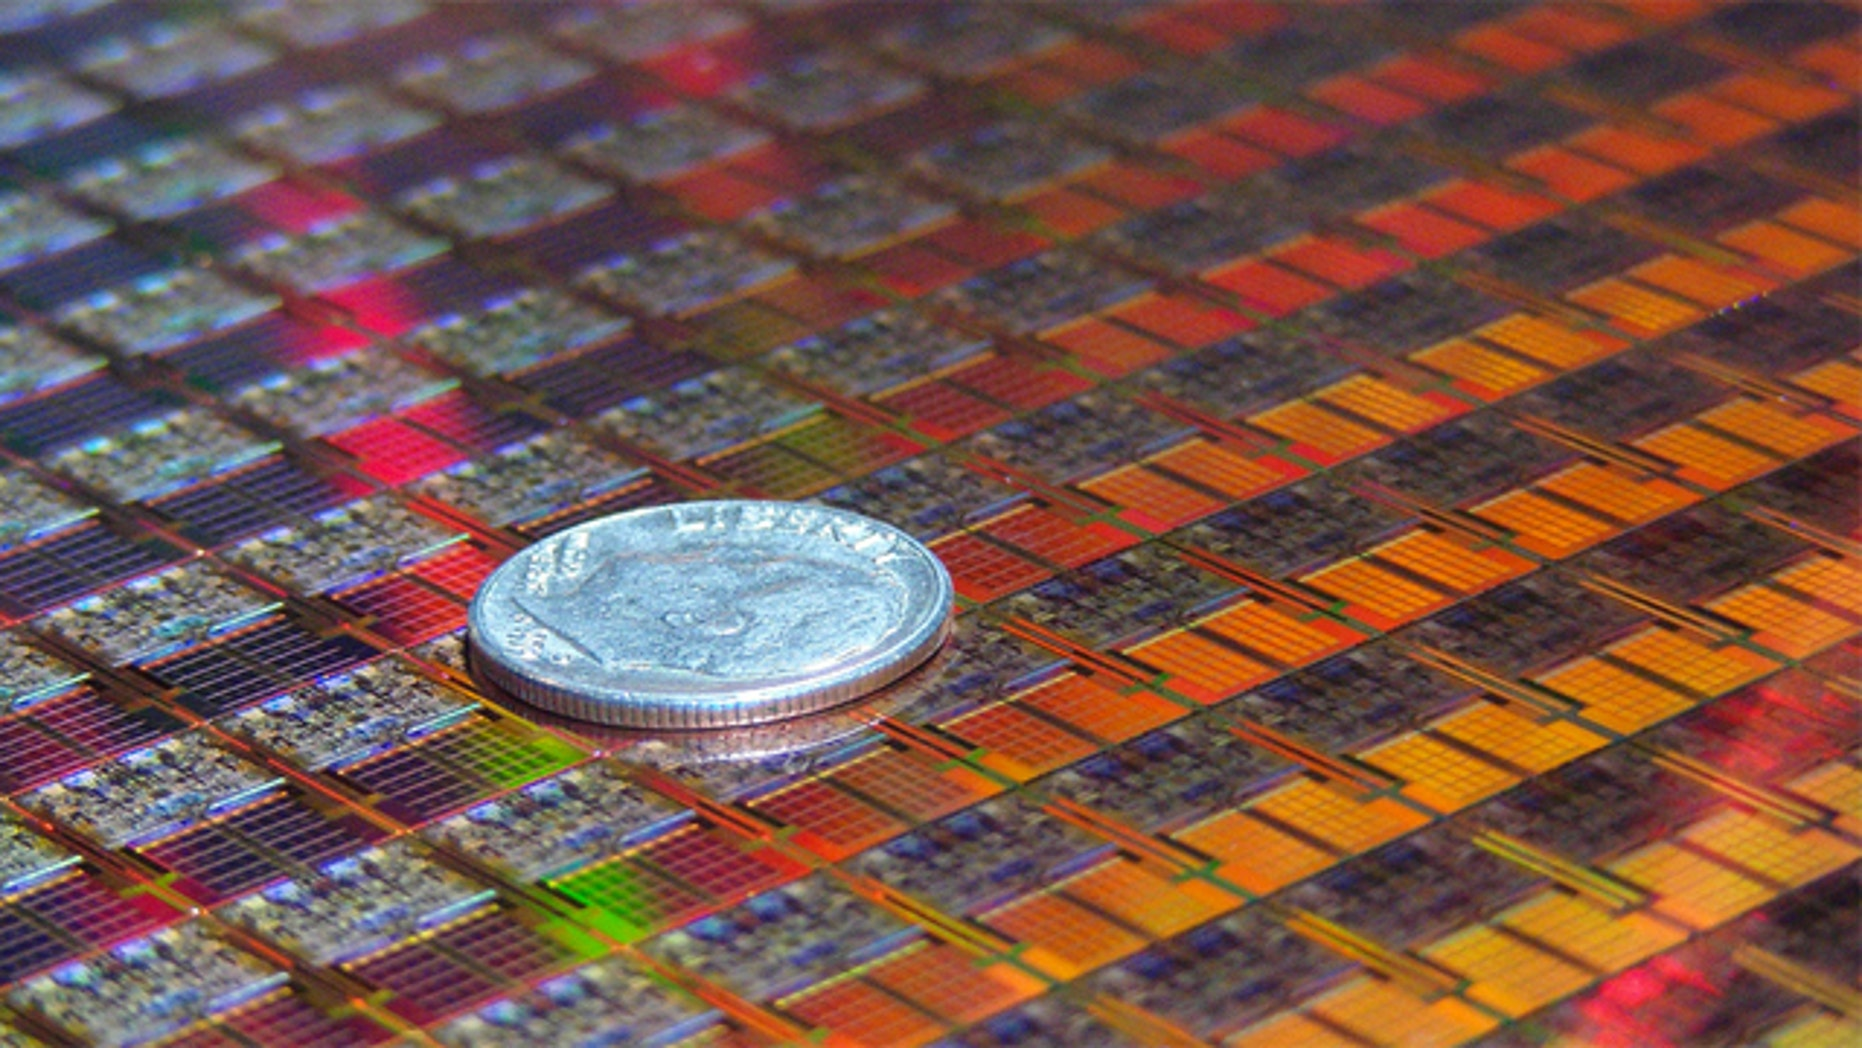 Intel still manufactures it's chips in the US.